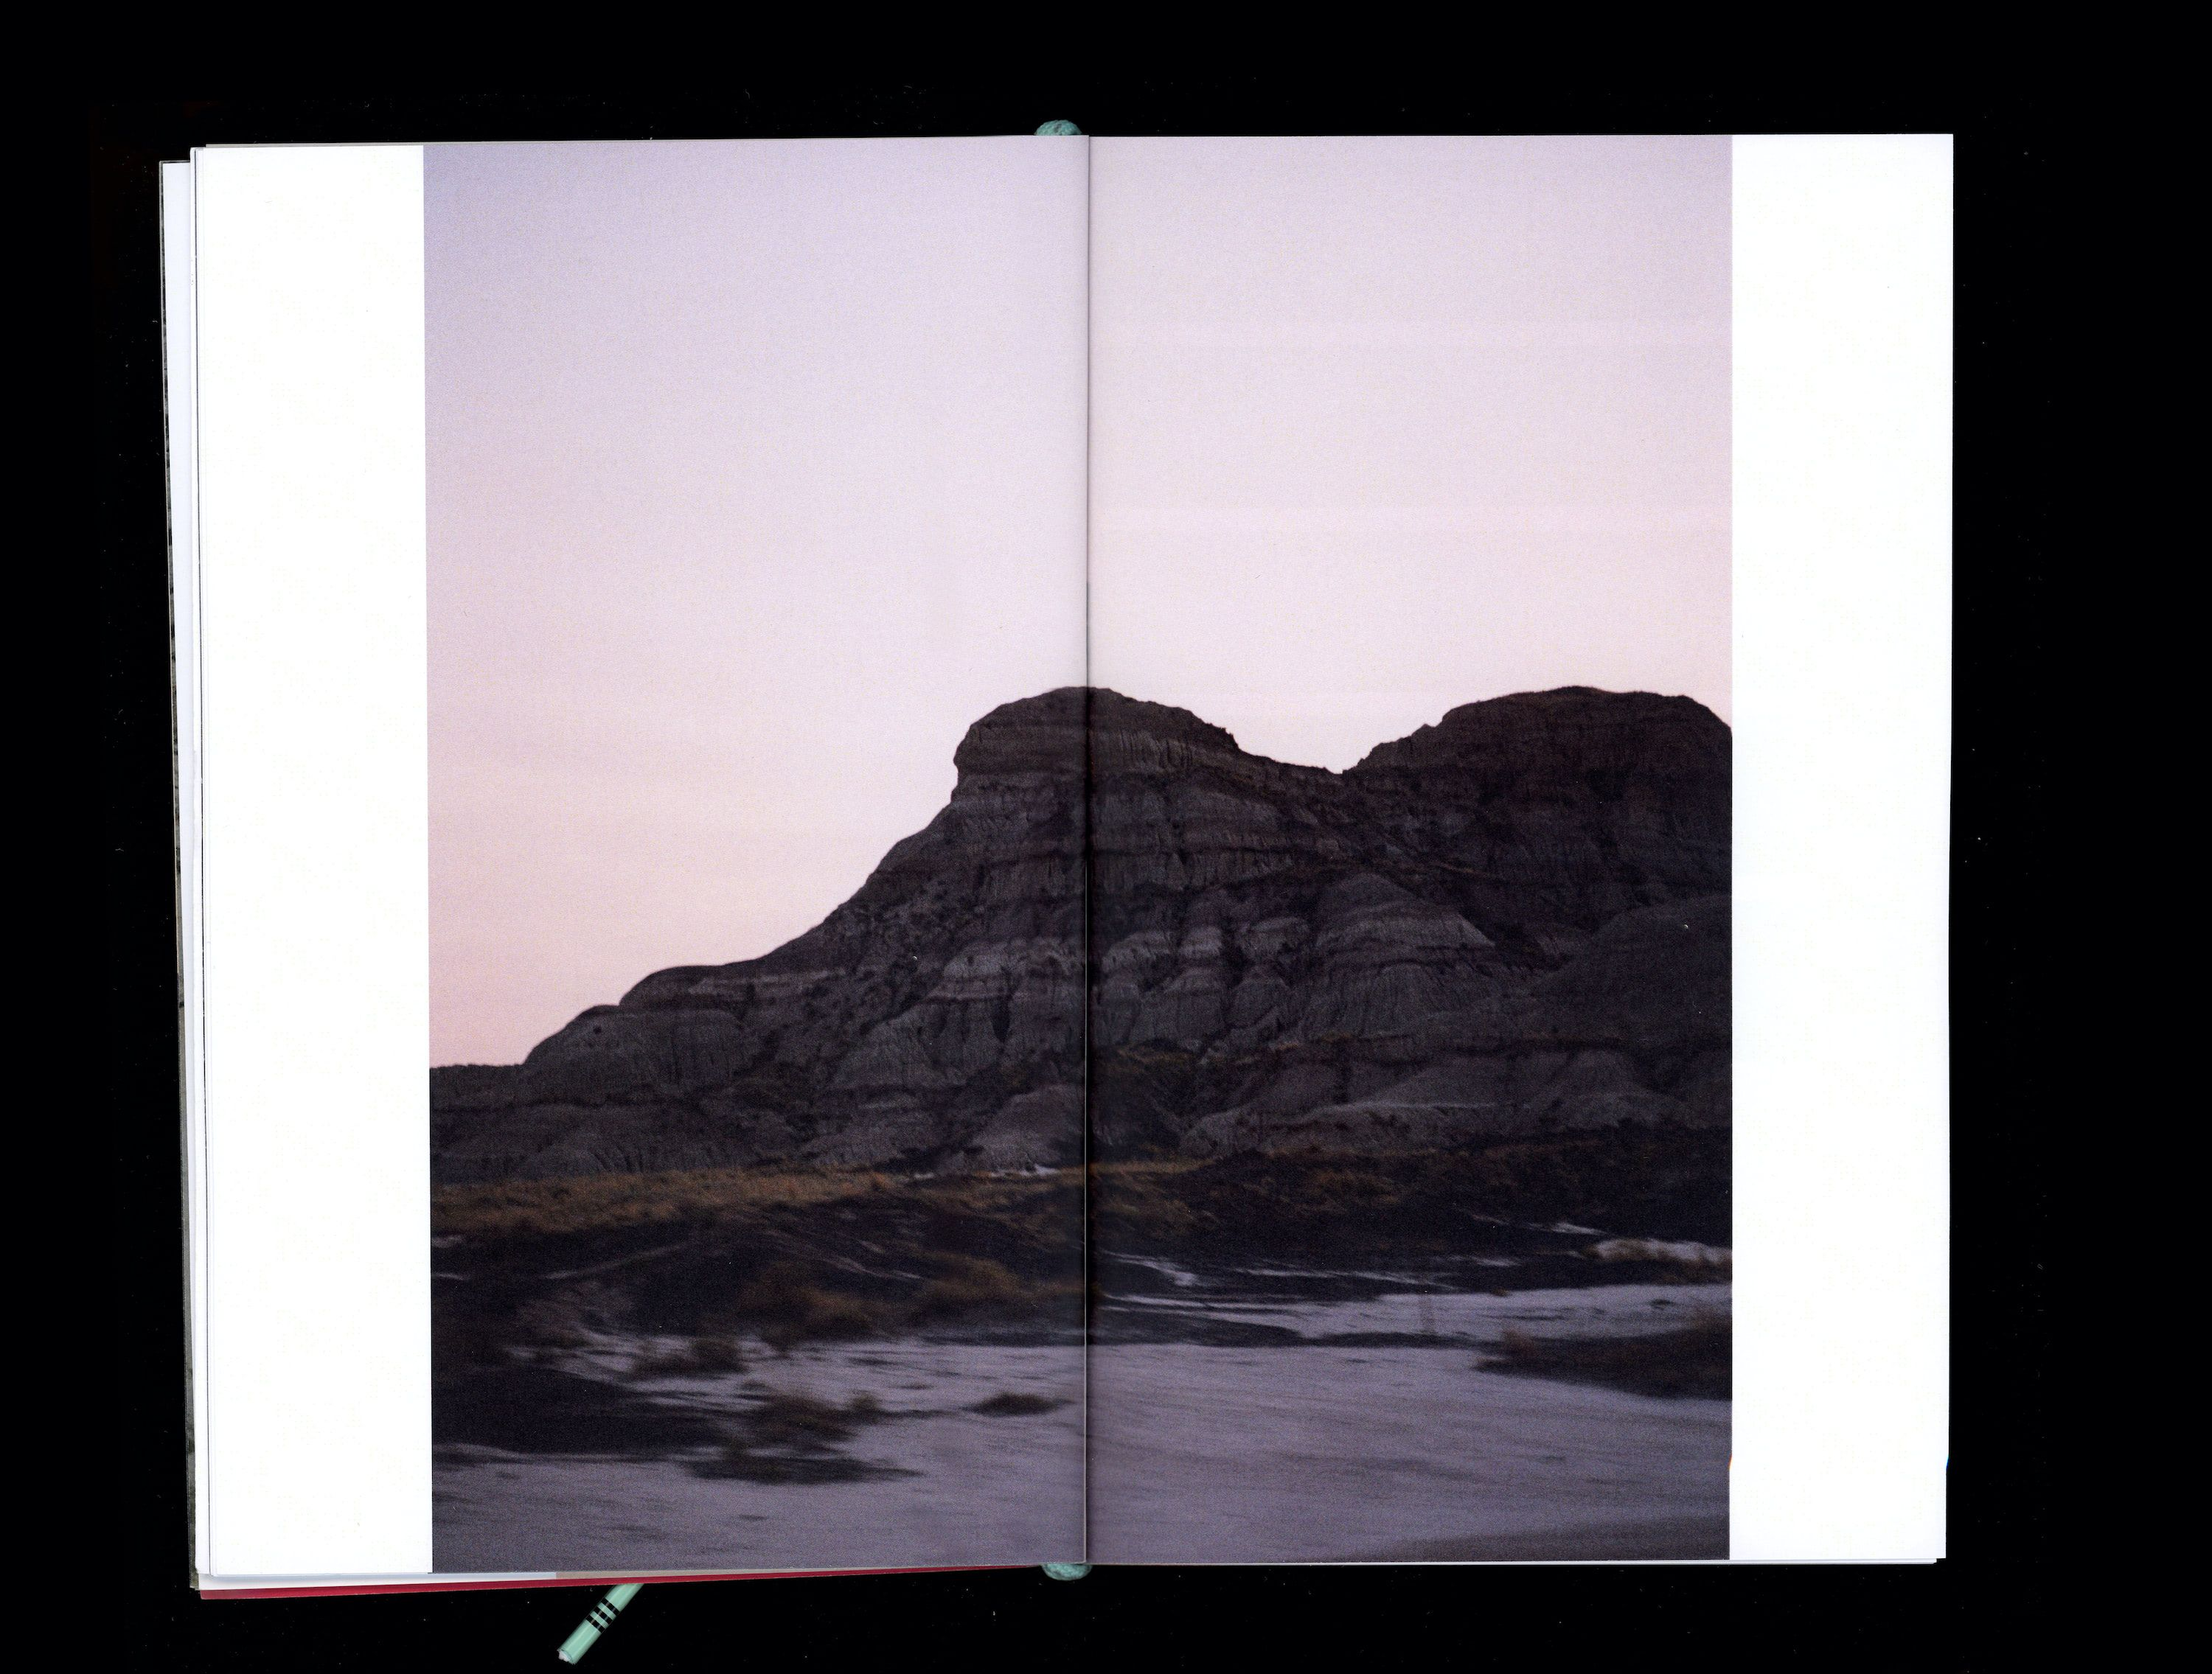 Photograph in book of rock with striations in front of pink sunset